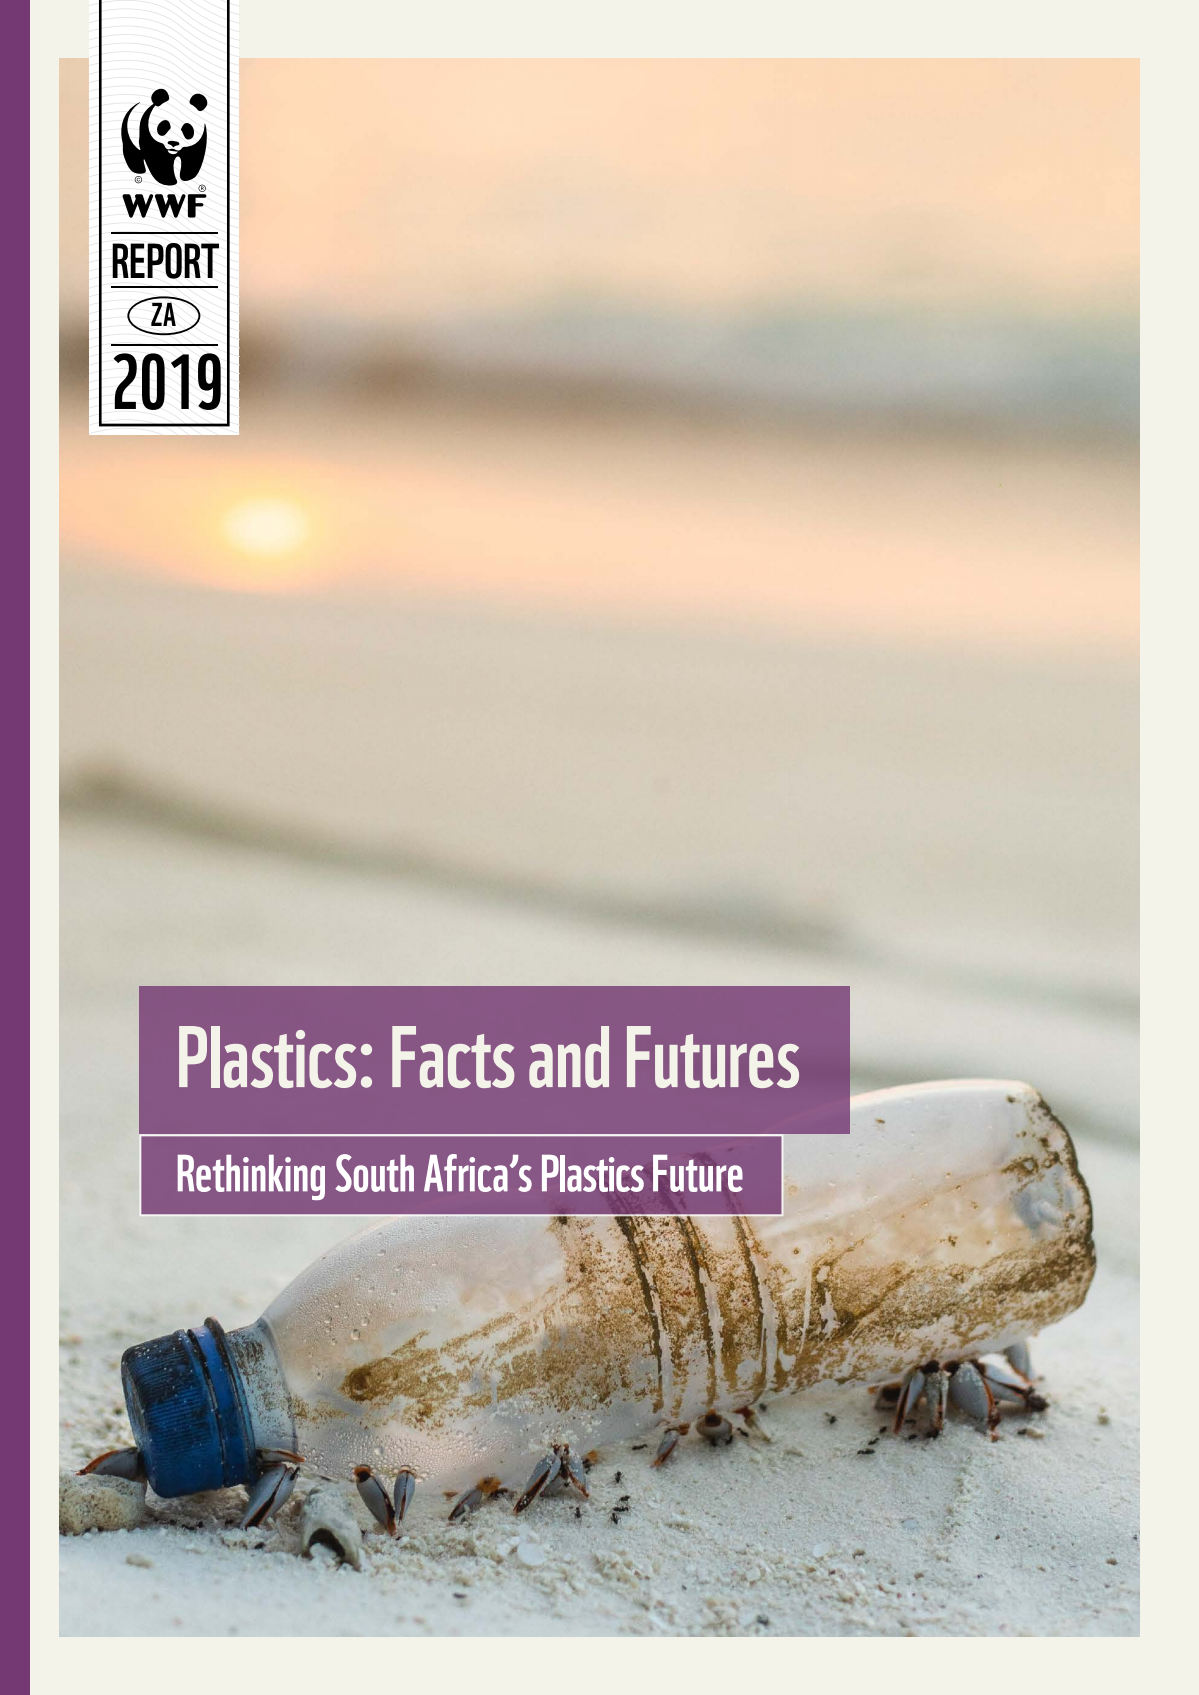 Plastics Facts and Futures Report (4 pages)